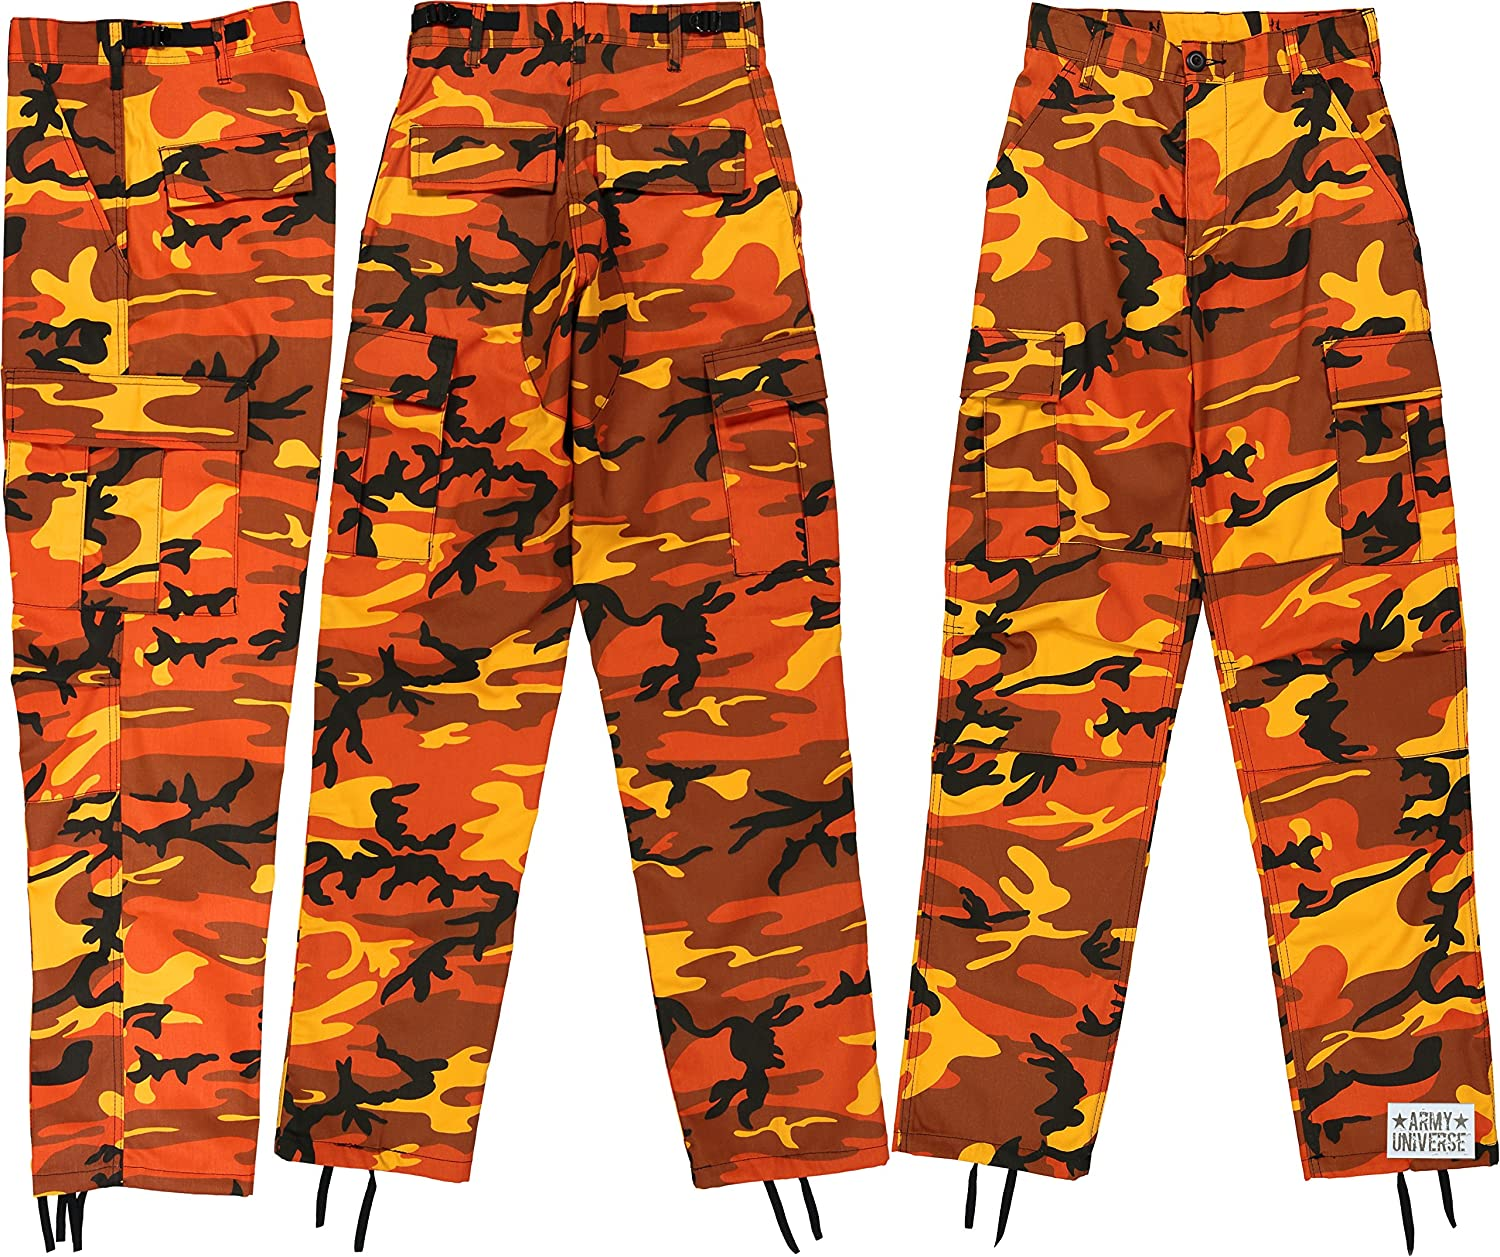 Amazon.com  Army Universe Orange Camo Cargo BDU Pants Hunters Camouflage  Tactical Military Fatigues with Pin  Clothing 5561f3da830